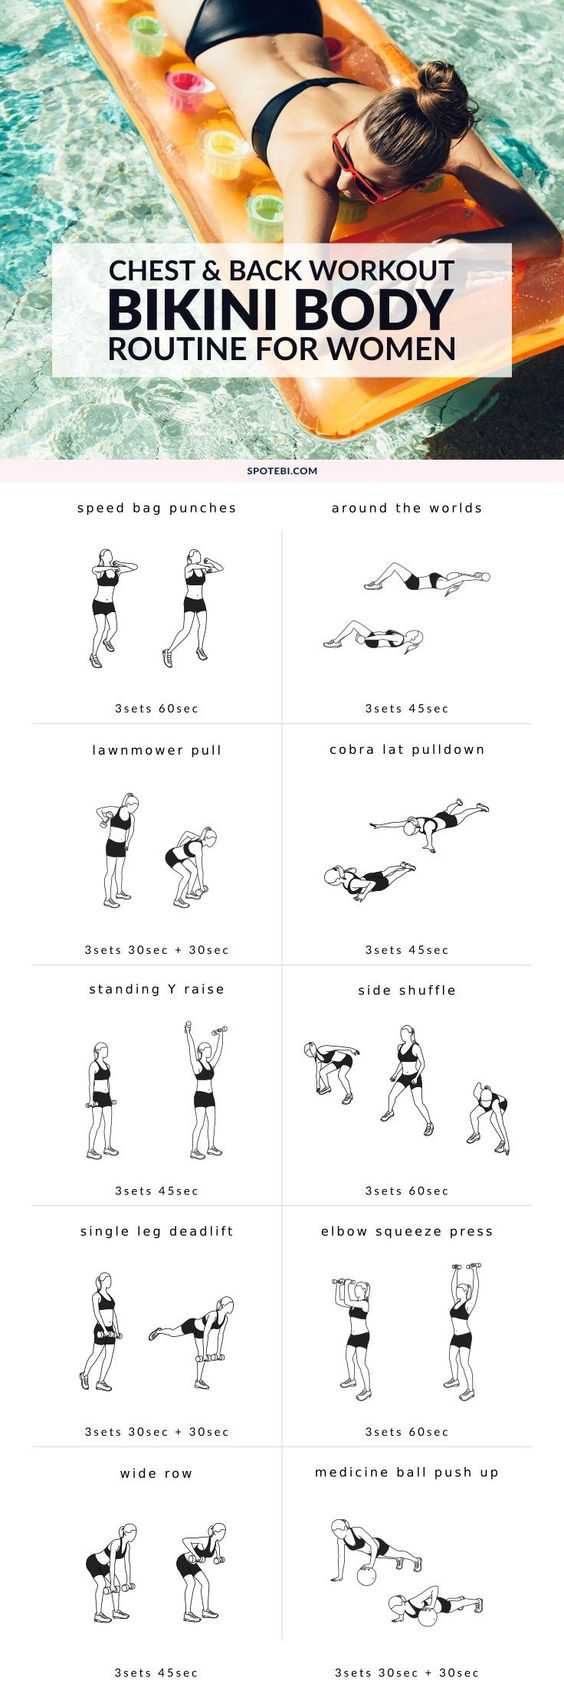 Chest & Back Workout Routines